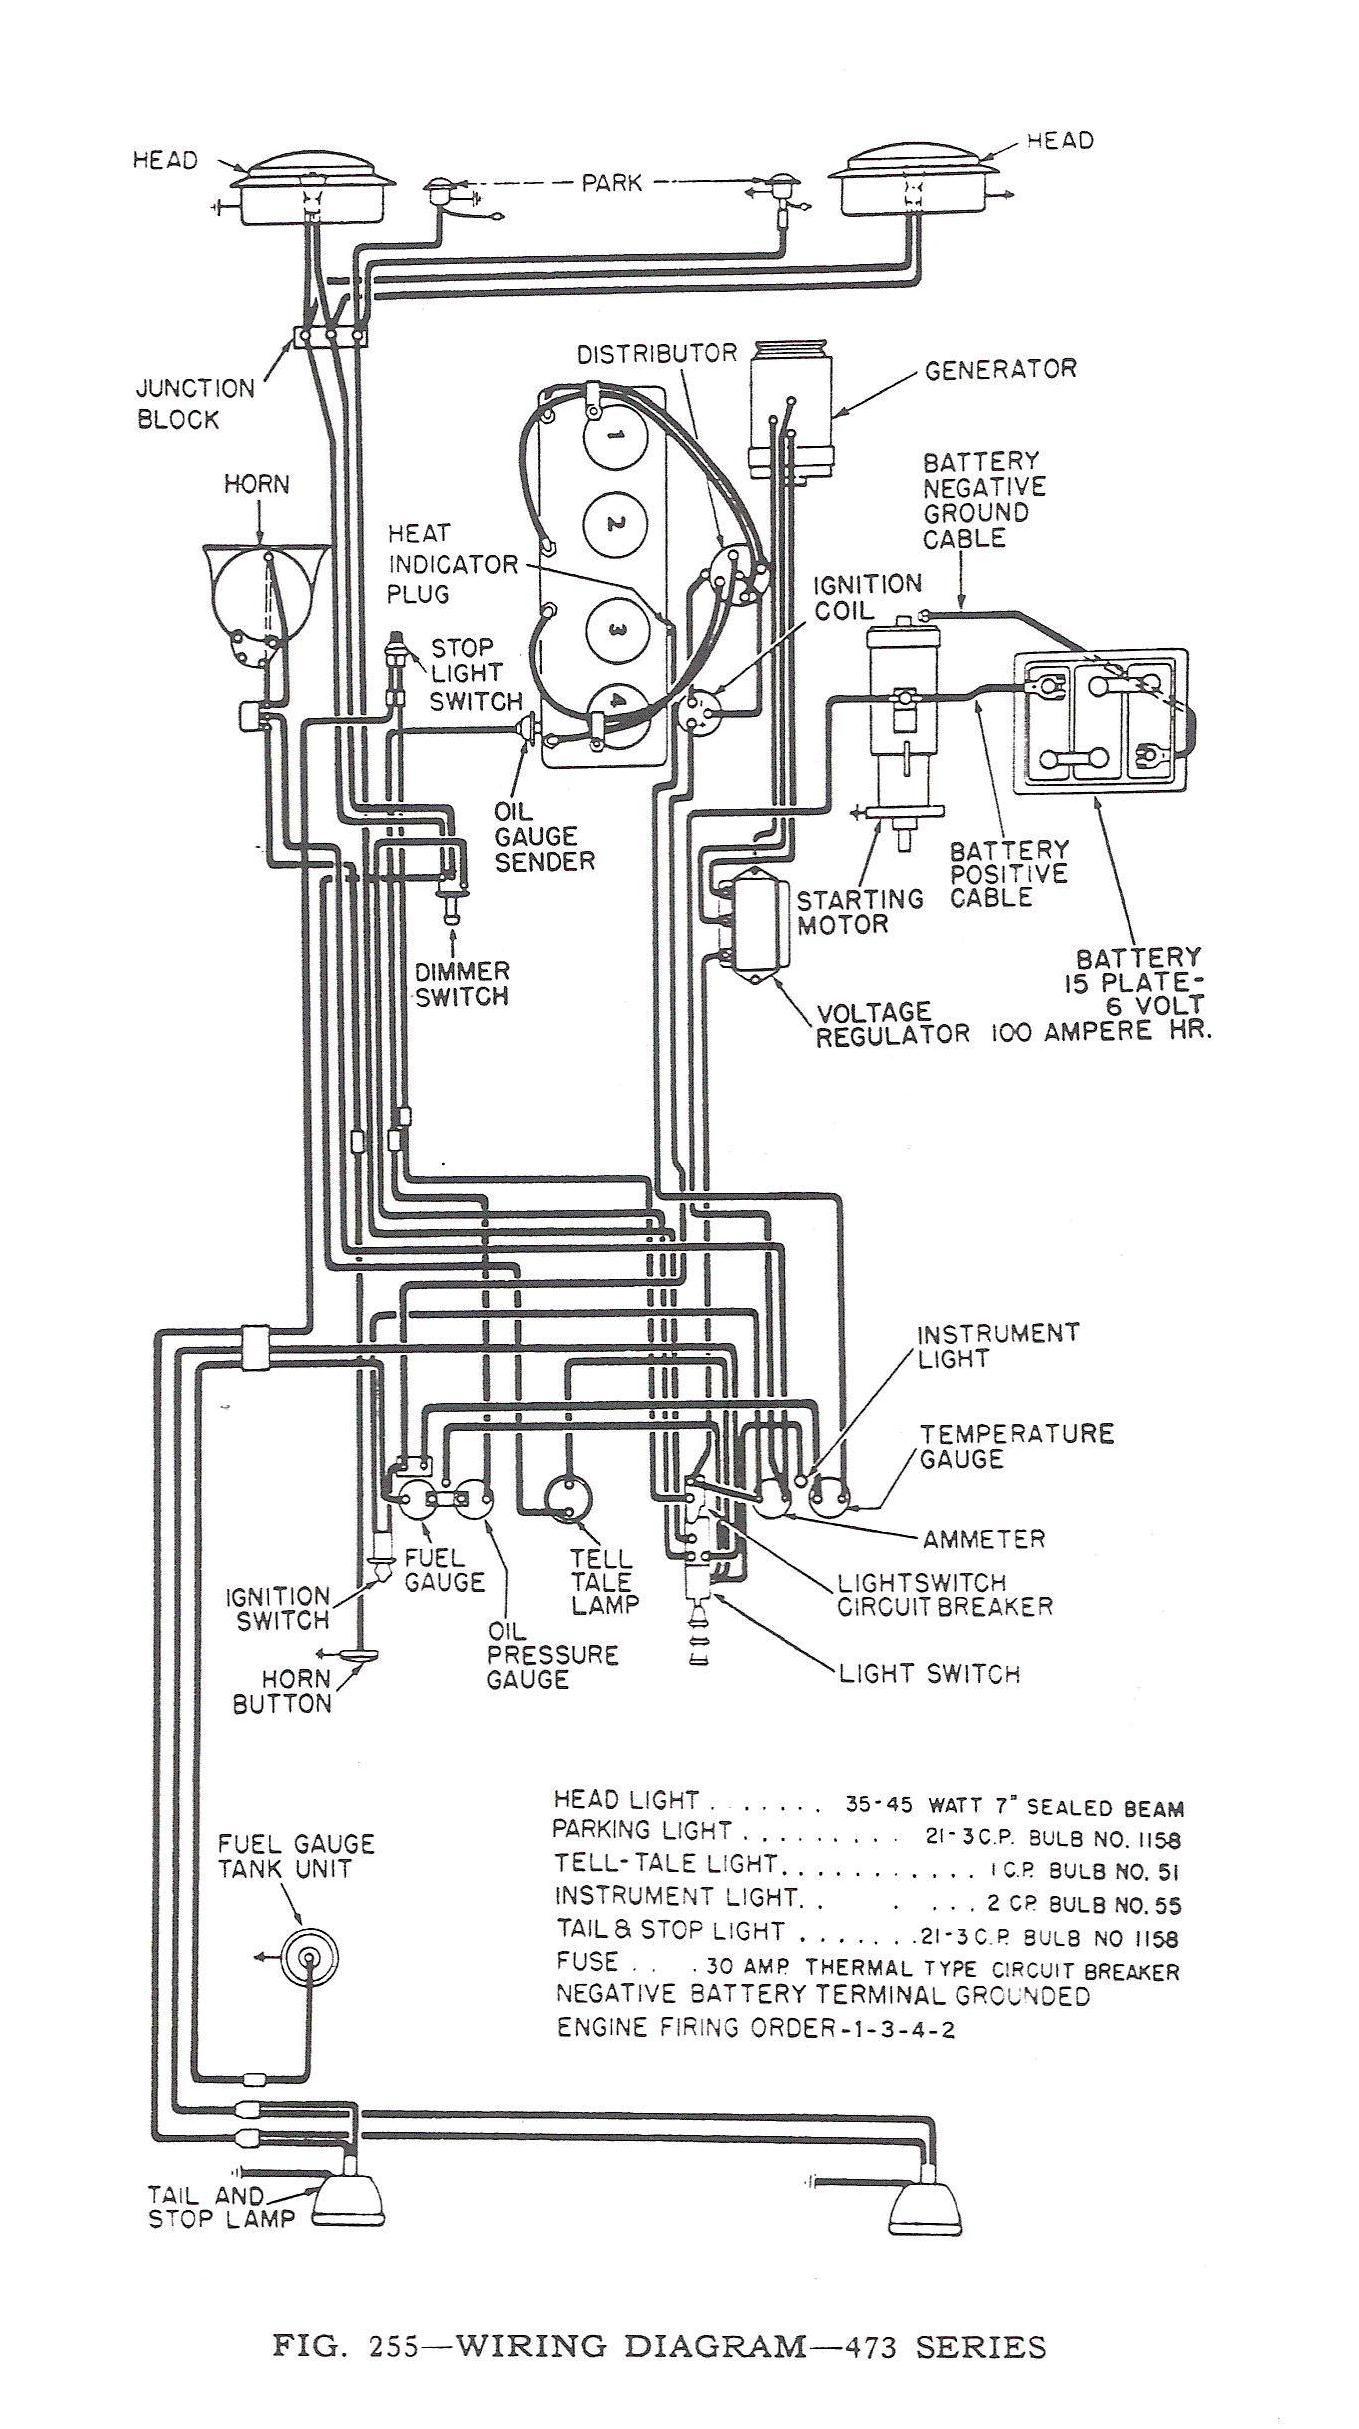 1952 jeep series 473 wiring diagrams - google search